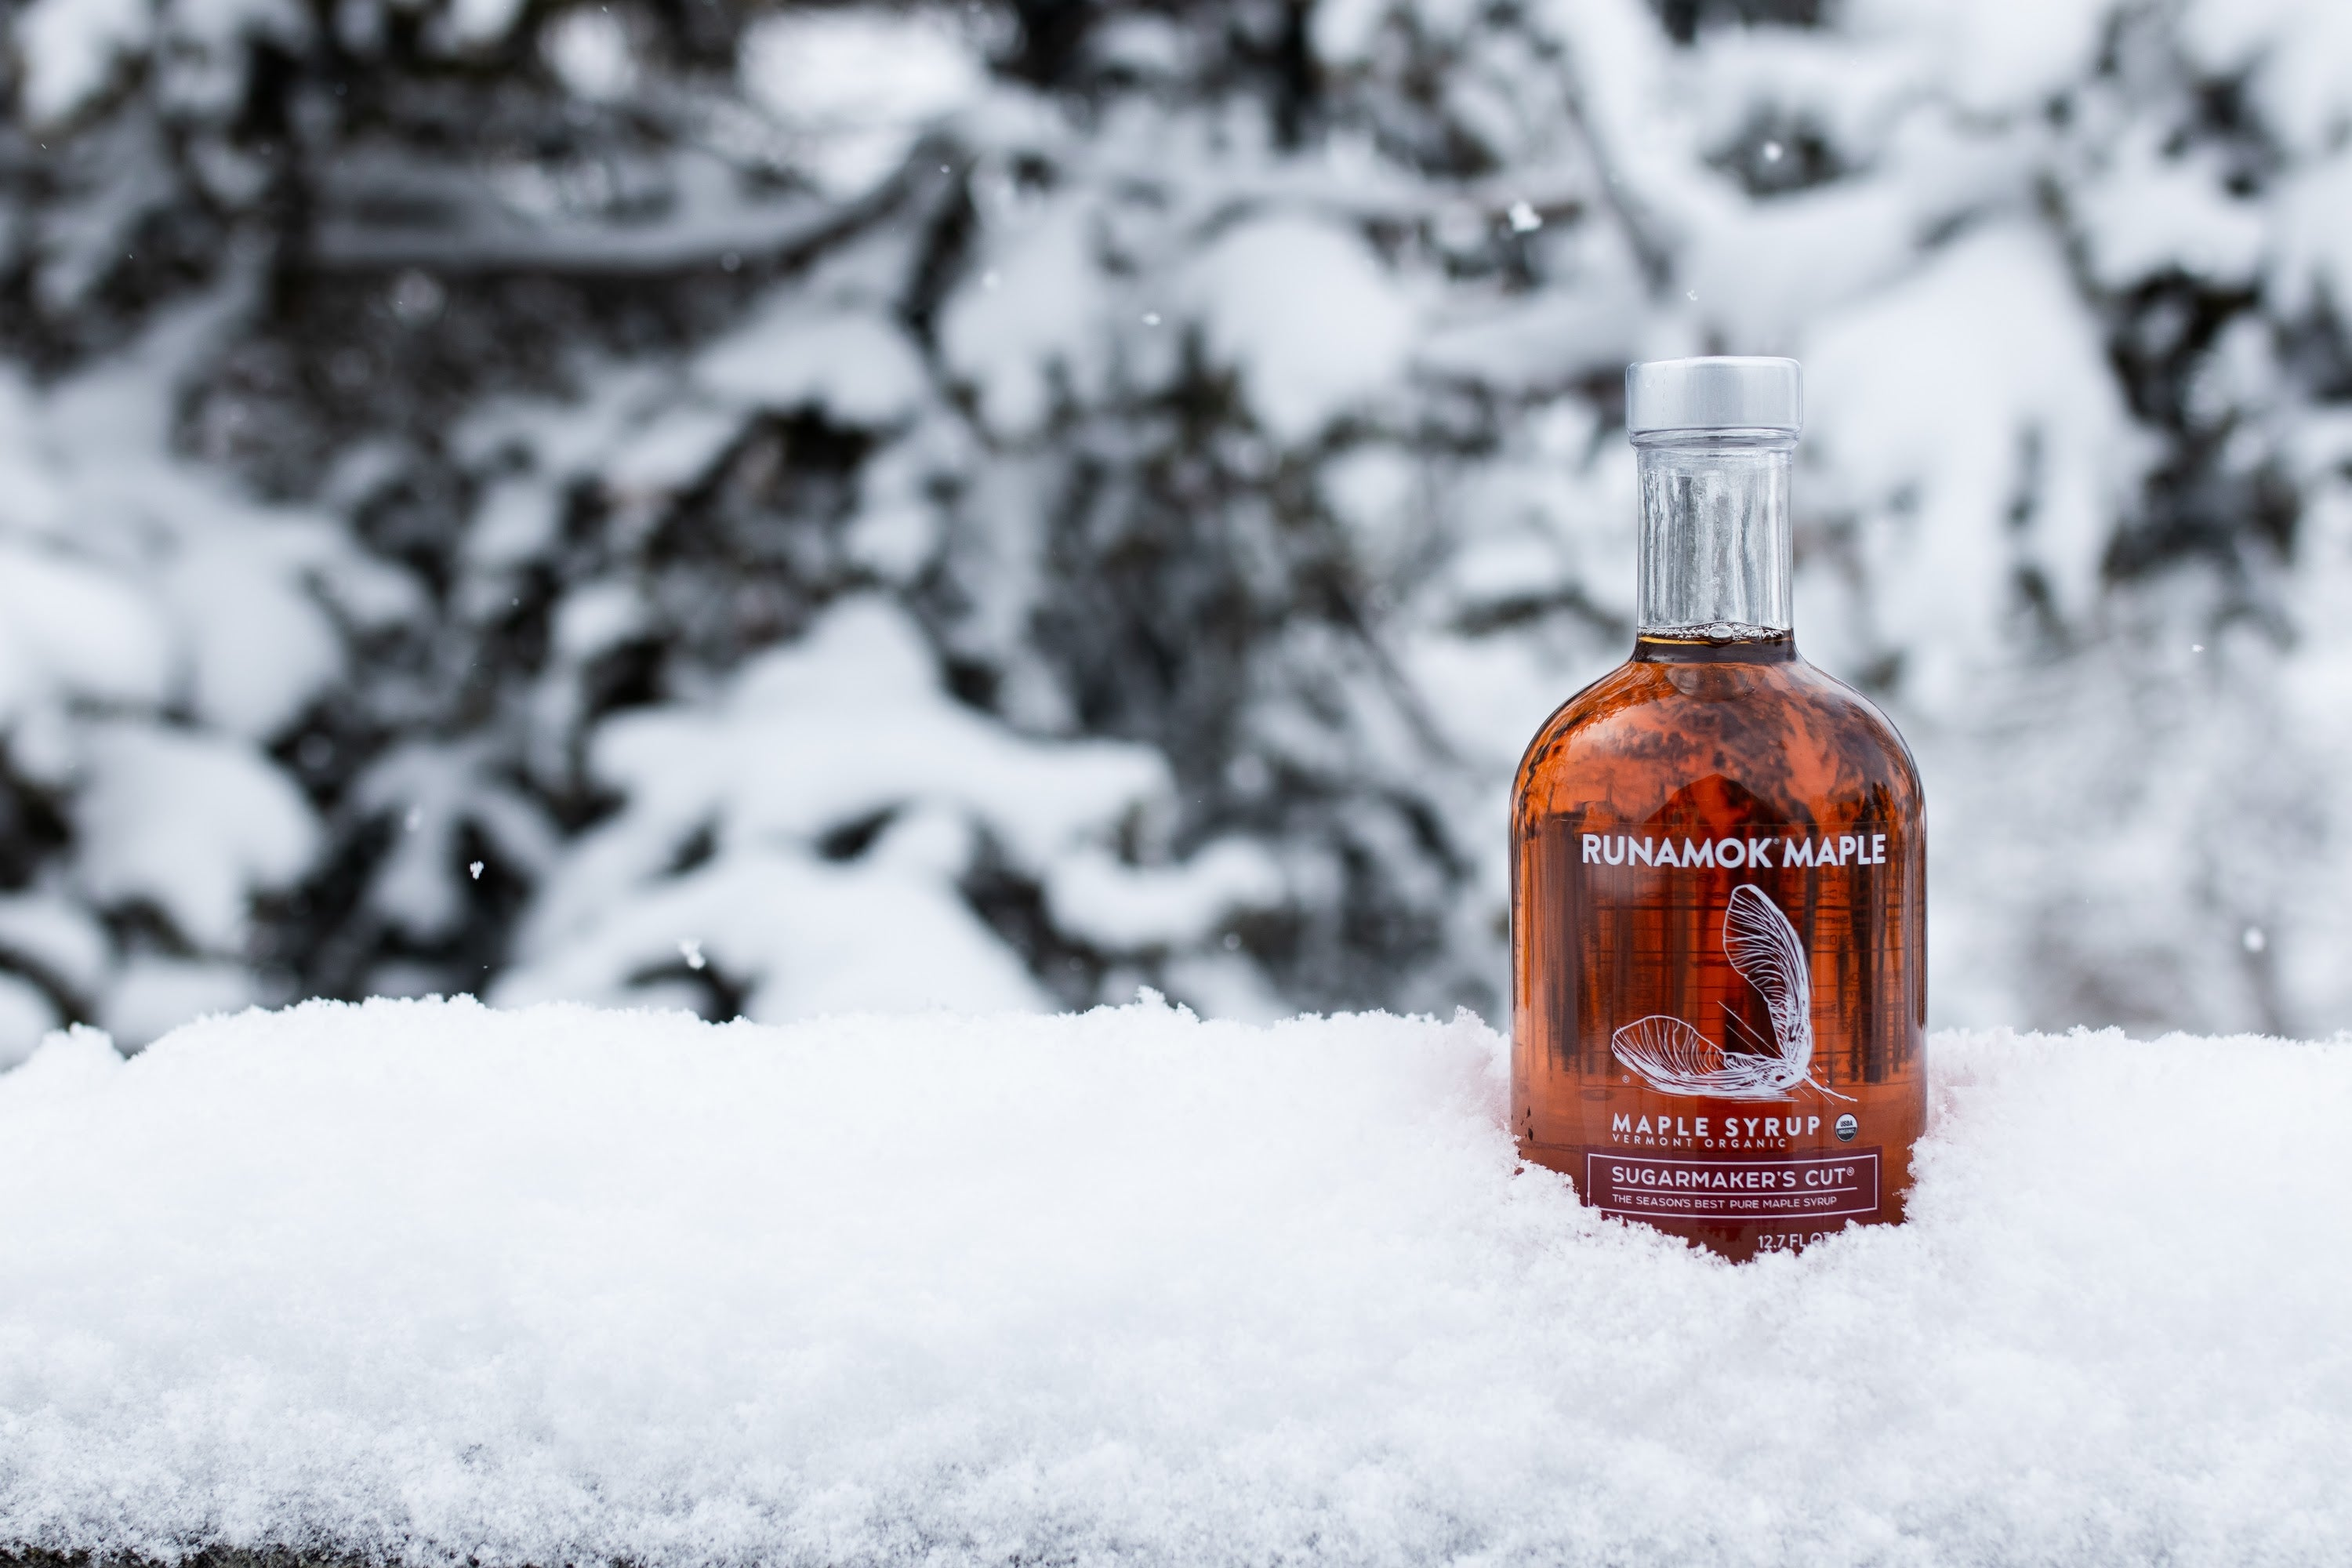 Runamok Maple Sugarmaker's Cut Maple Syrup in snow